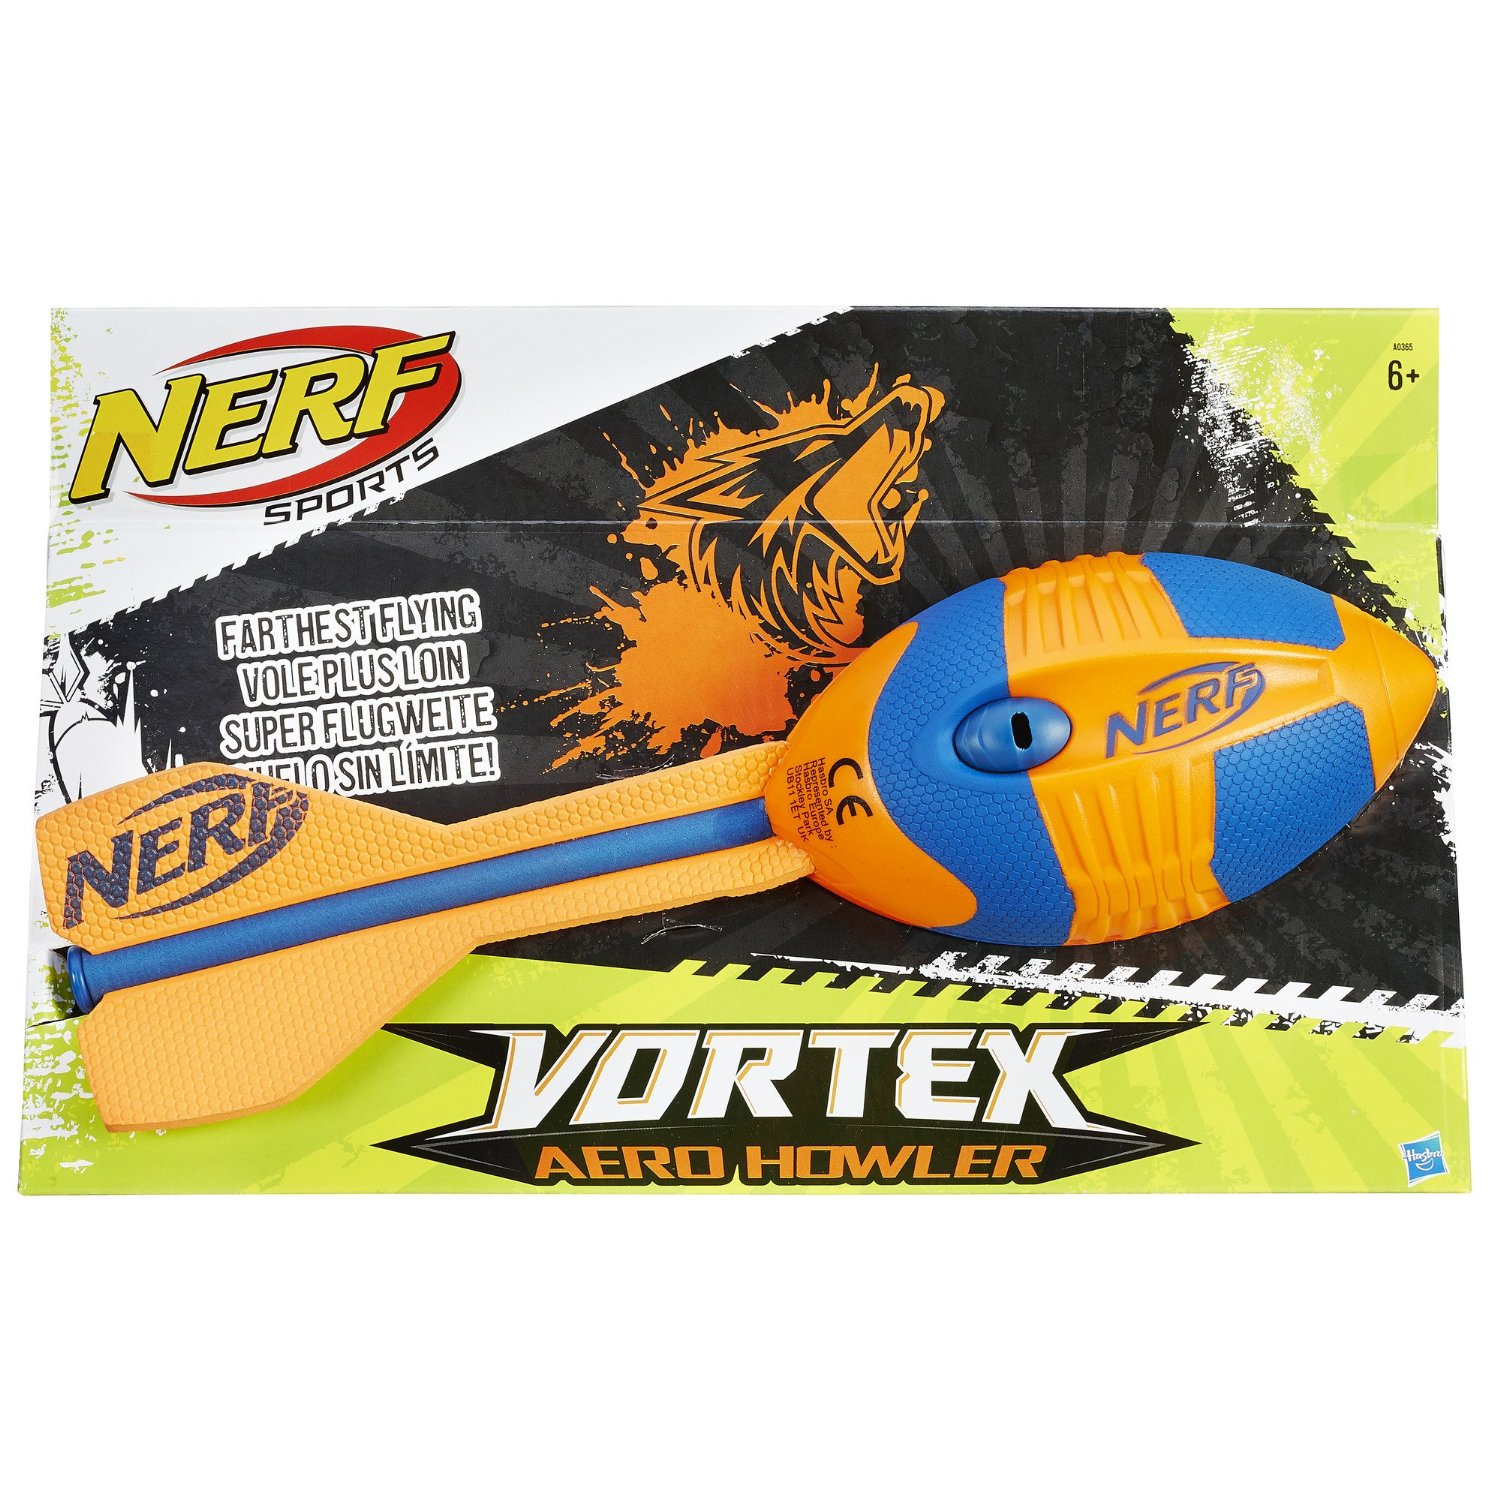 NERF Sports Vortex AERO HOWLER Flying Football Whistling Football